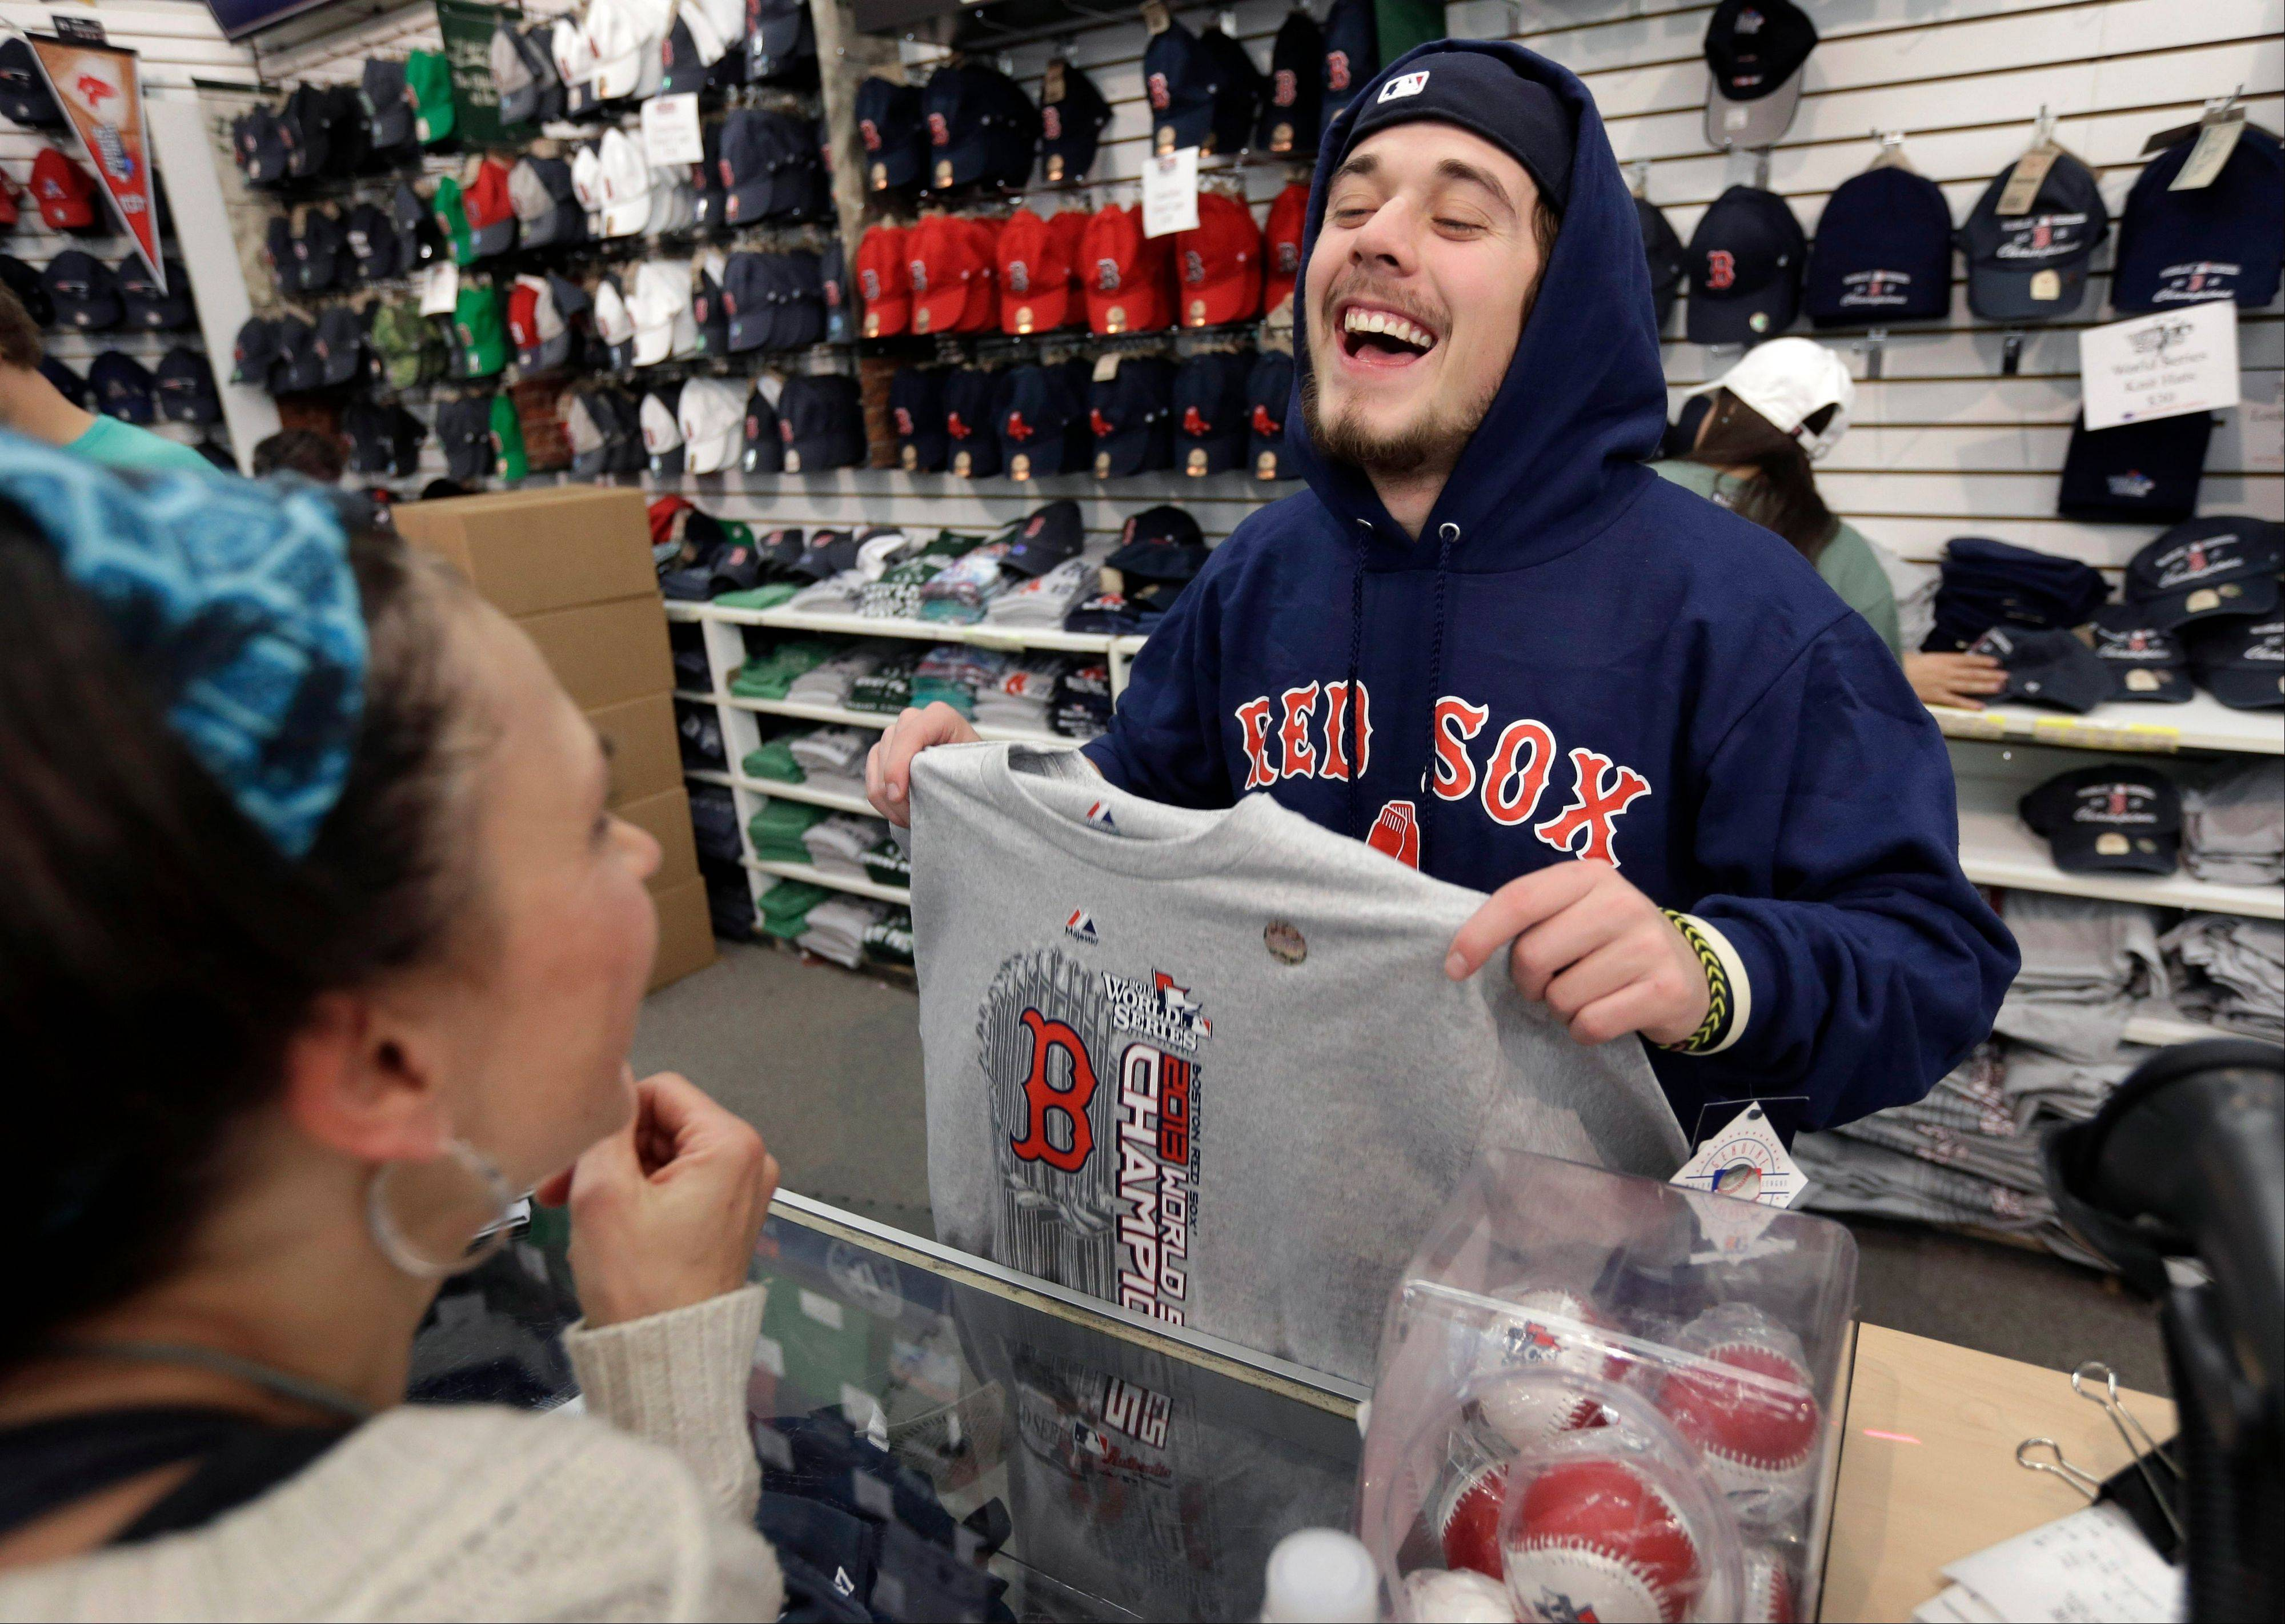 Worker Jake Miskin of Boston, right, laughs with Lori Leduc, of Calgary, Alberta, Canada, as she buys a 2013 baseball World Series champions shirt at a shop near Fenway Park on Thursday.